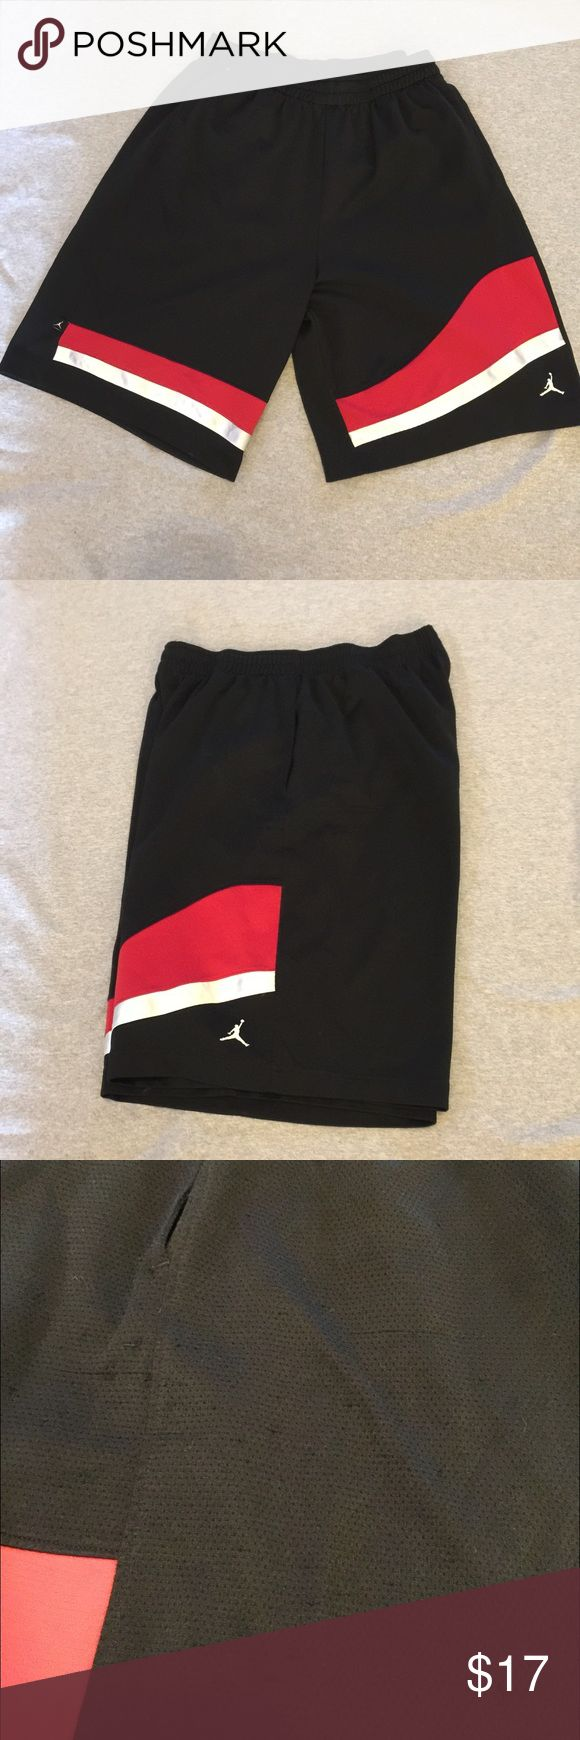 Jordan basketball shorts Men's size extra large. Several runs and snags as shown in the images. Besides that, good used condition. Jordan Shorts Athletic